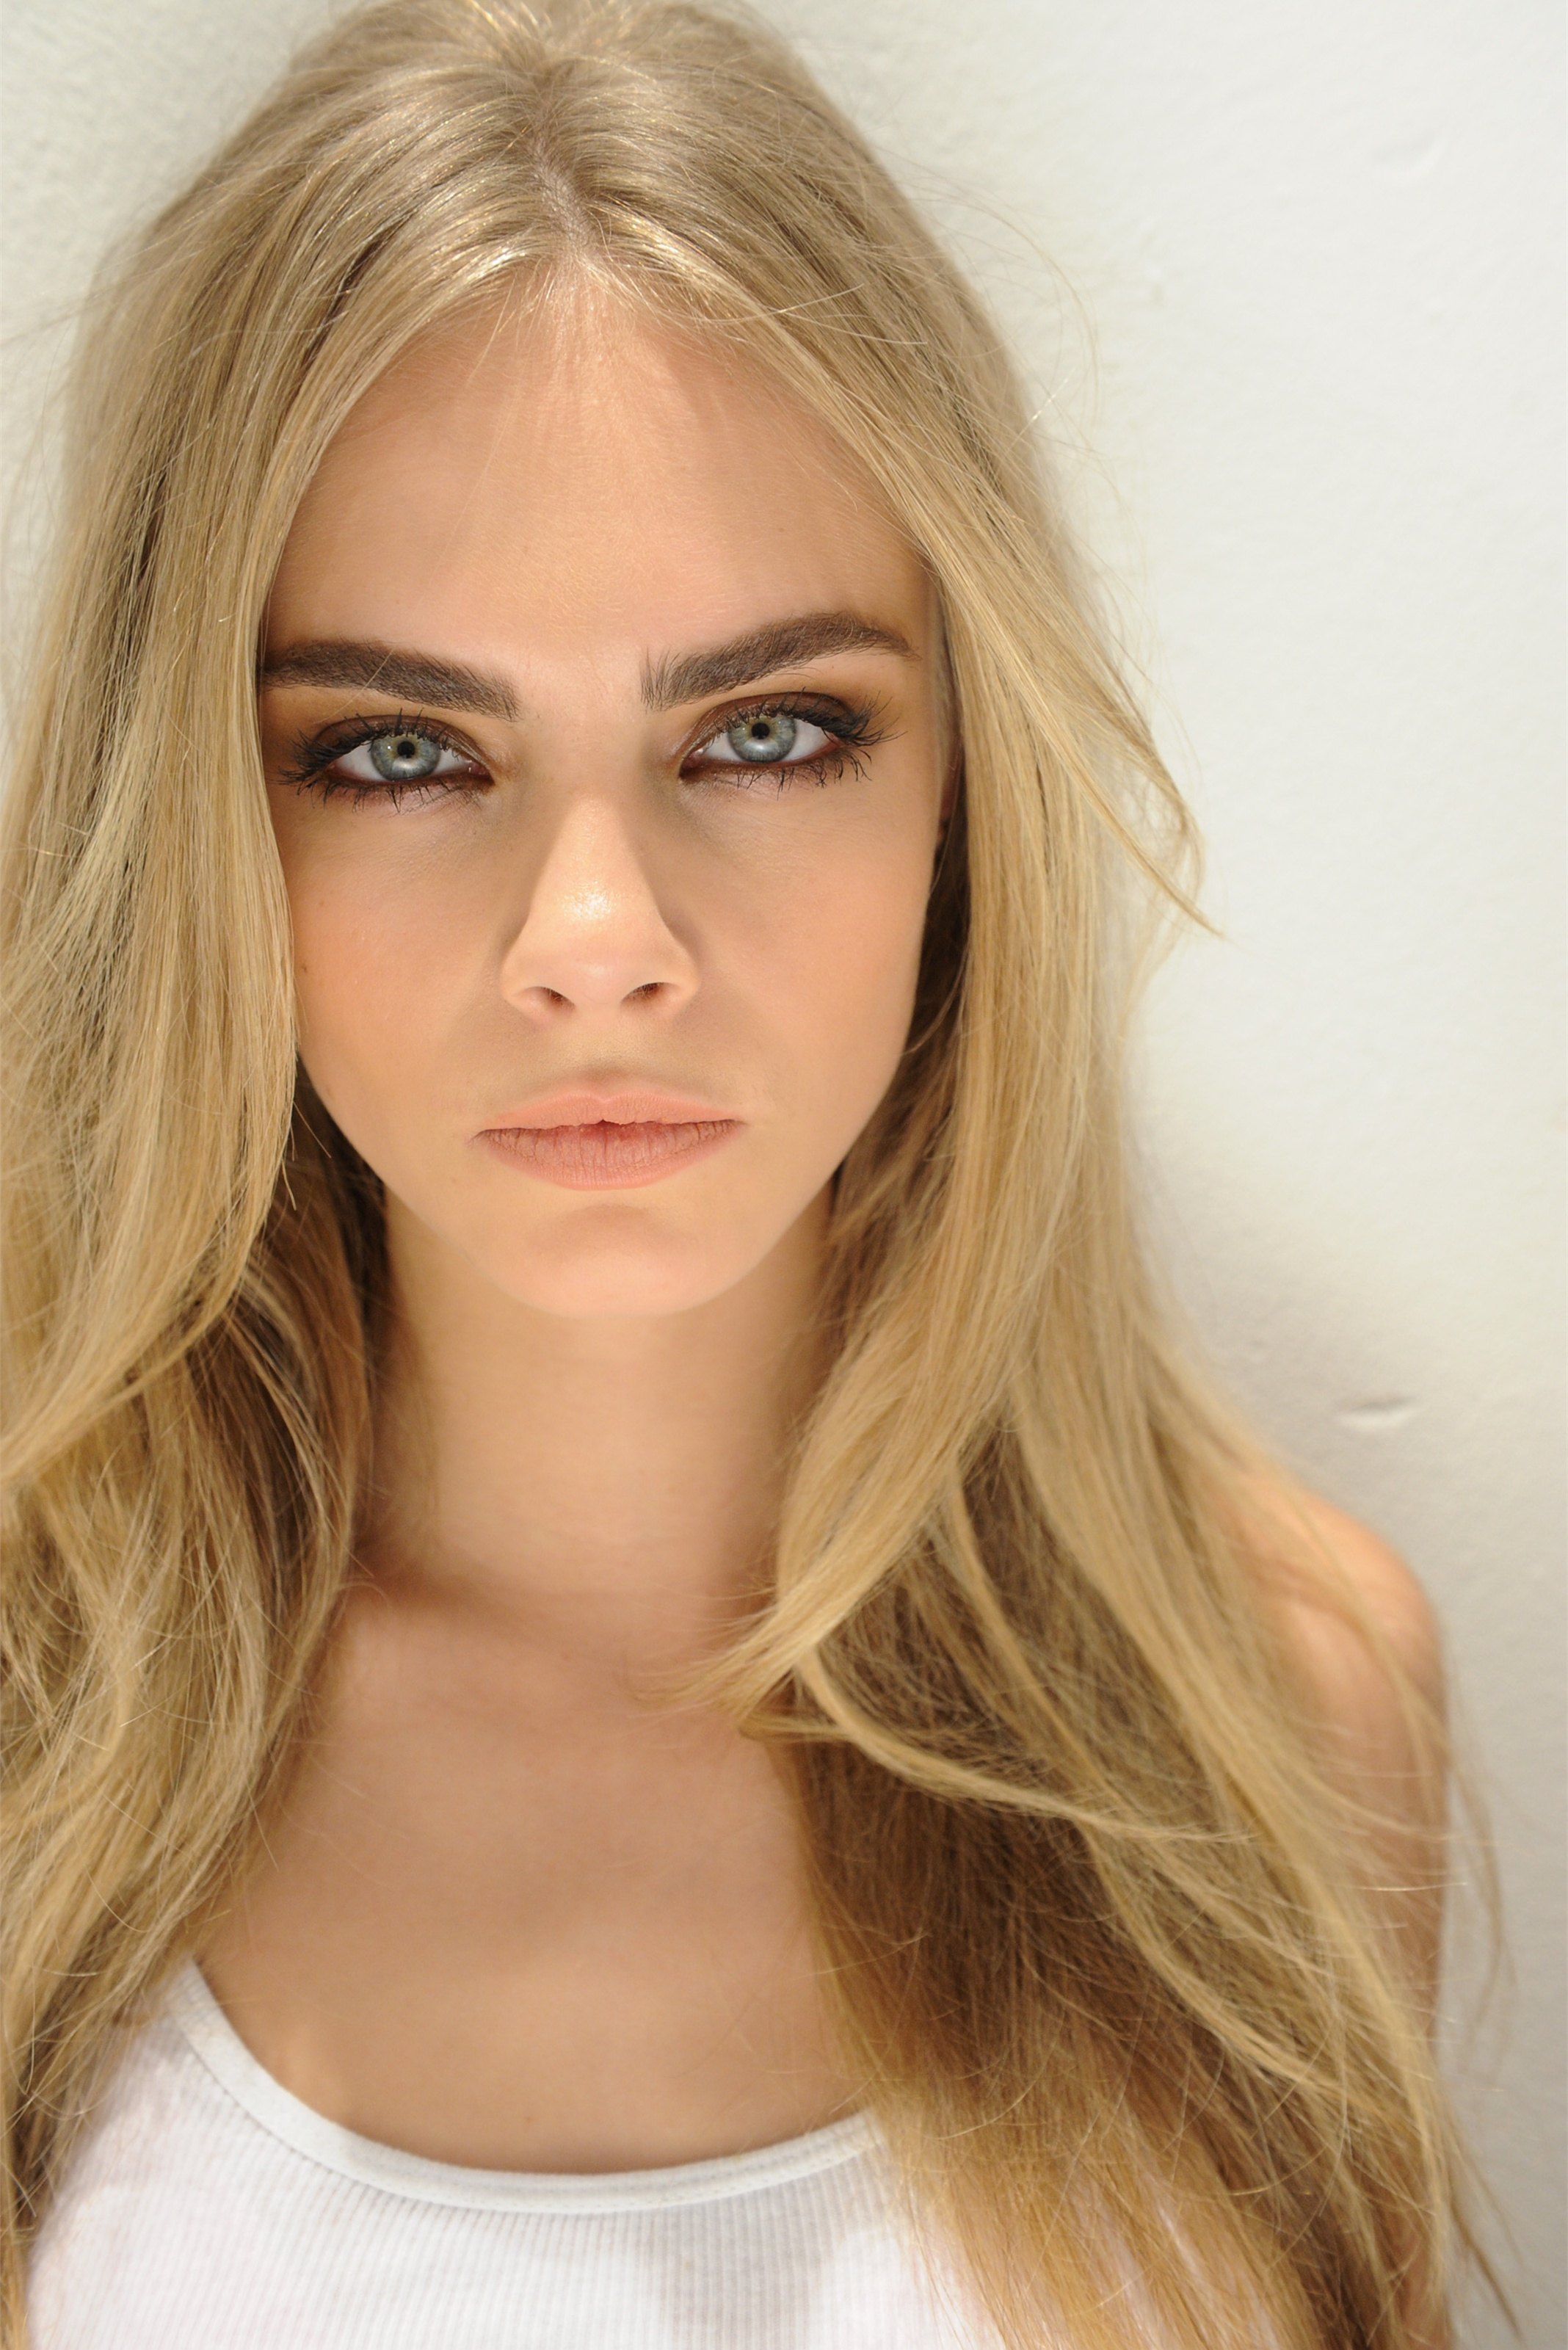 Cara Delevingne photo #457556